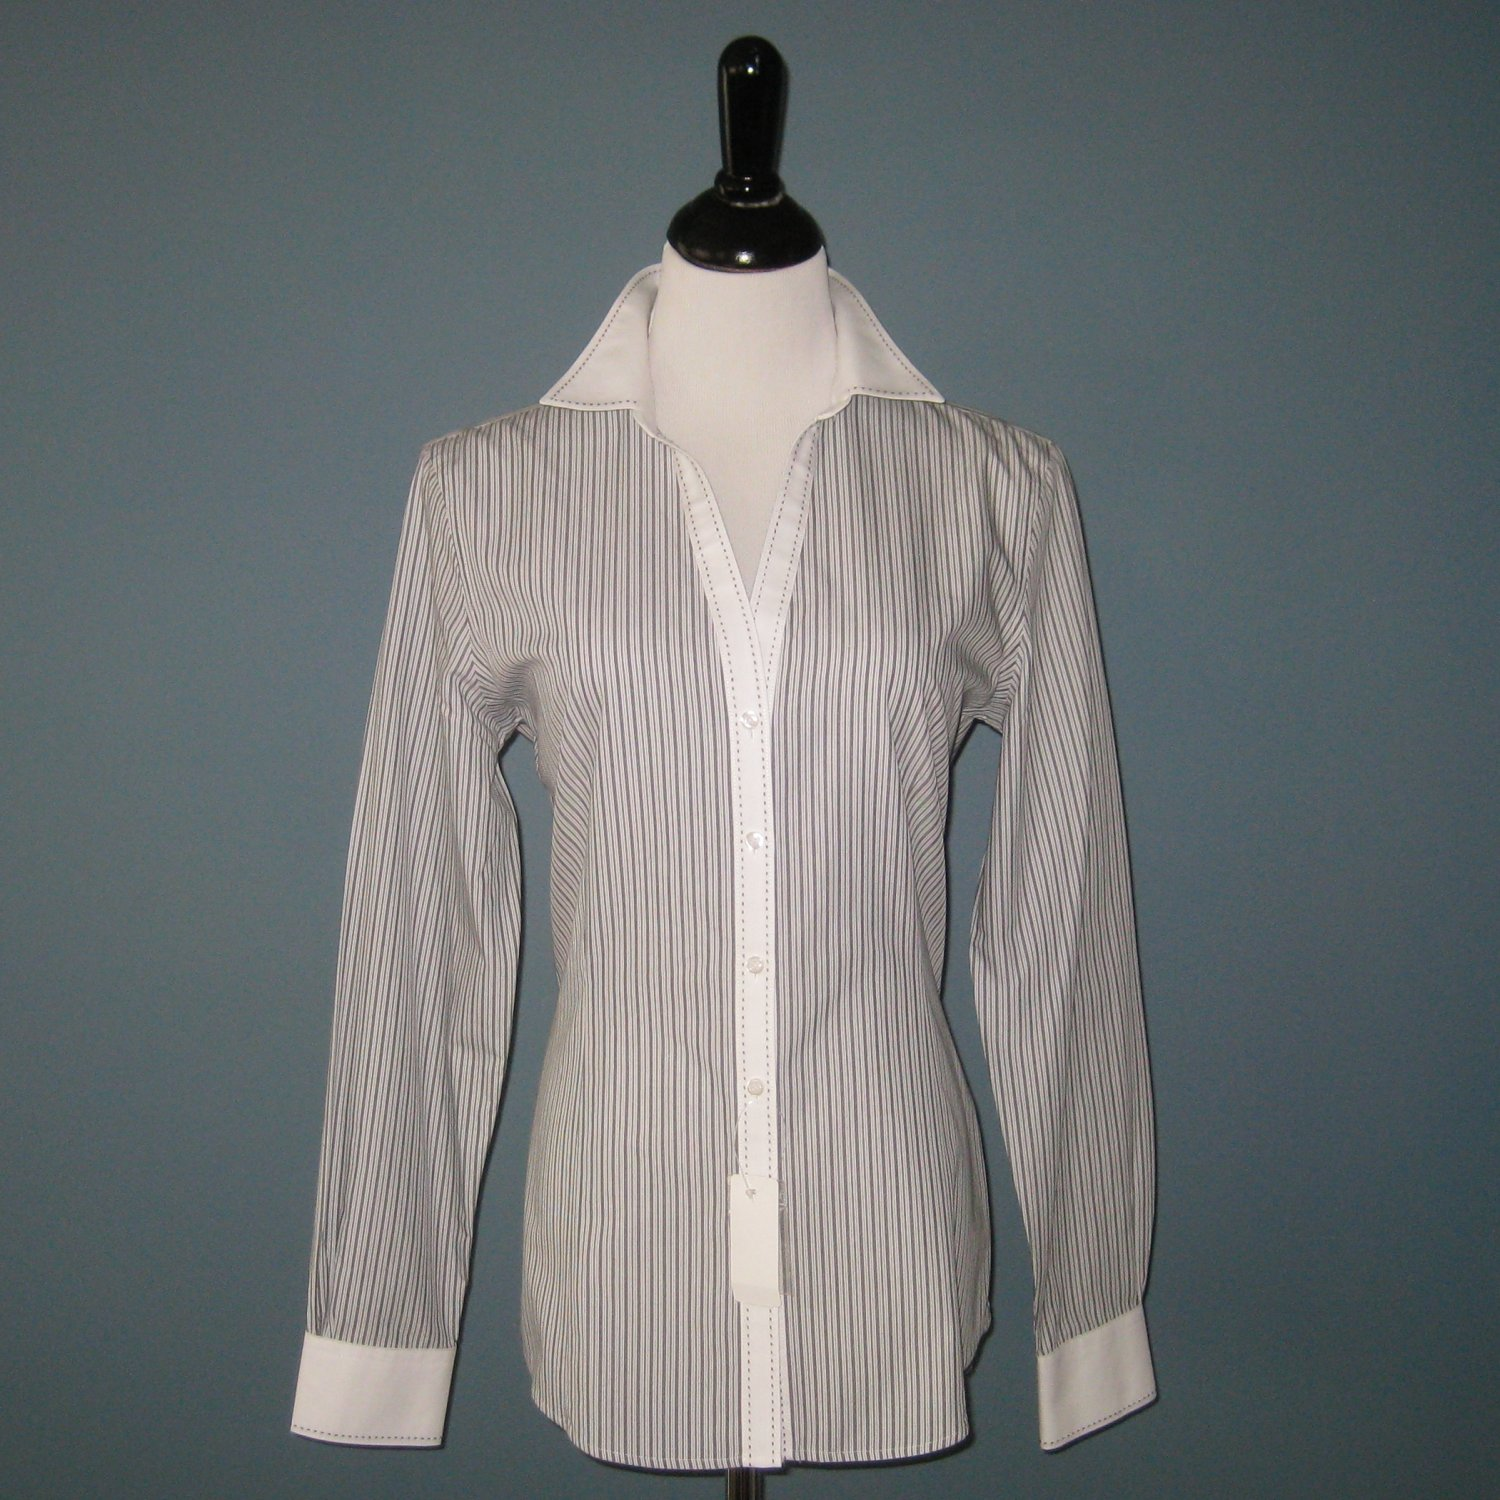 NWT Brooks Brothers White w/Black Stripes L/S Fitted Non-Iron 100% Cotton Shirt Blouse - 10